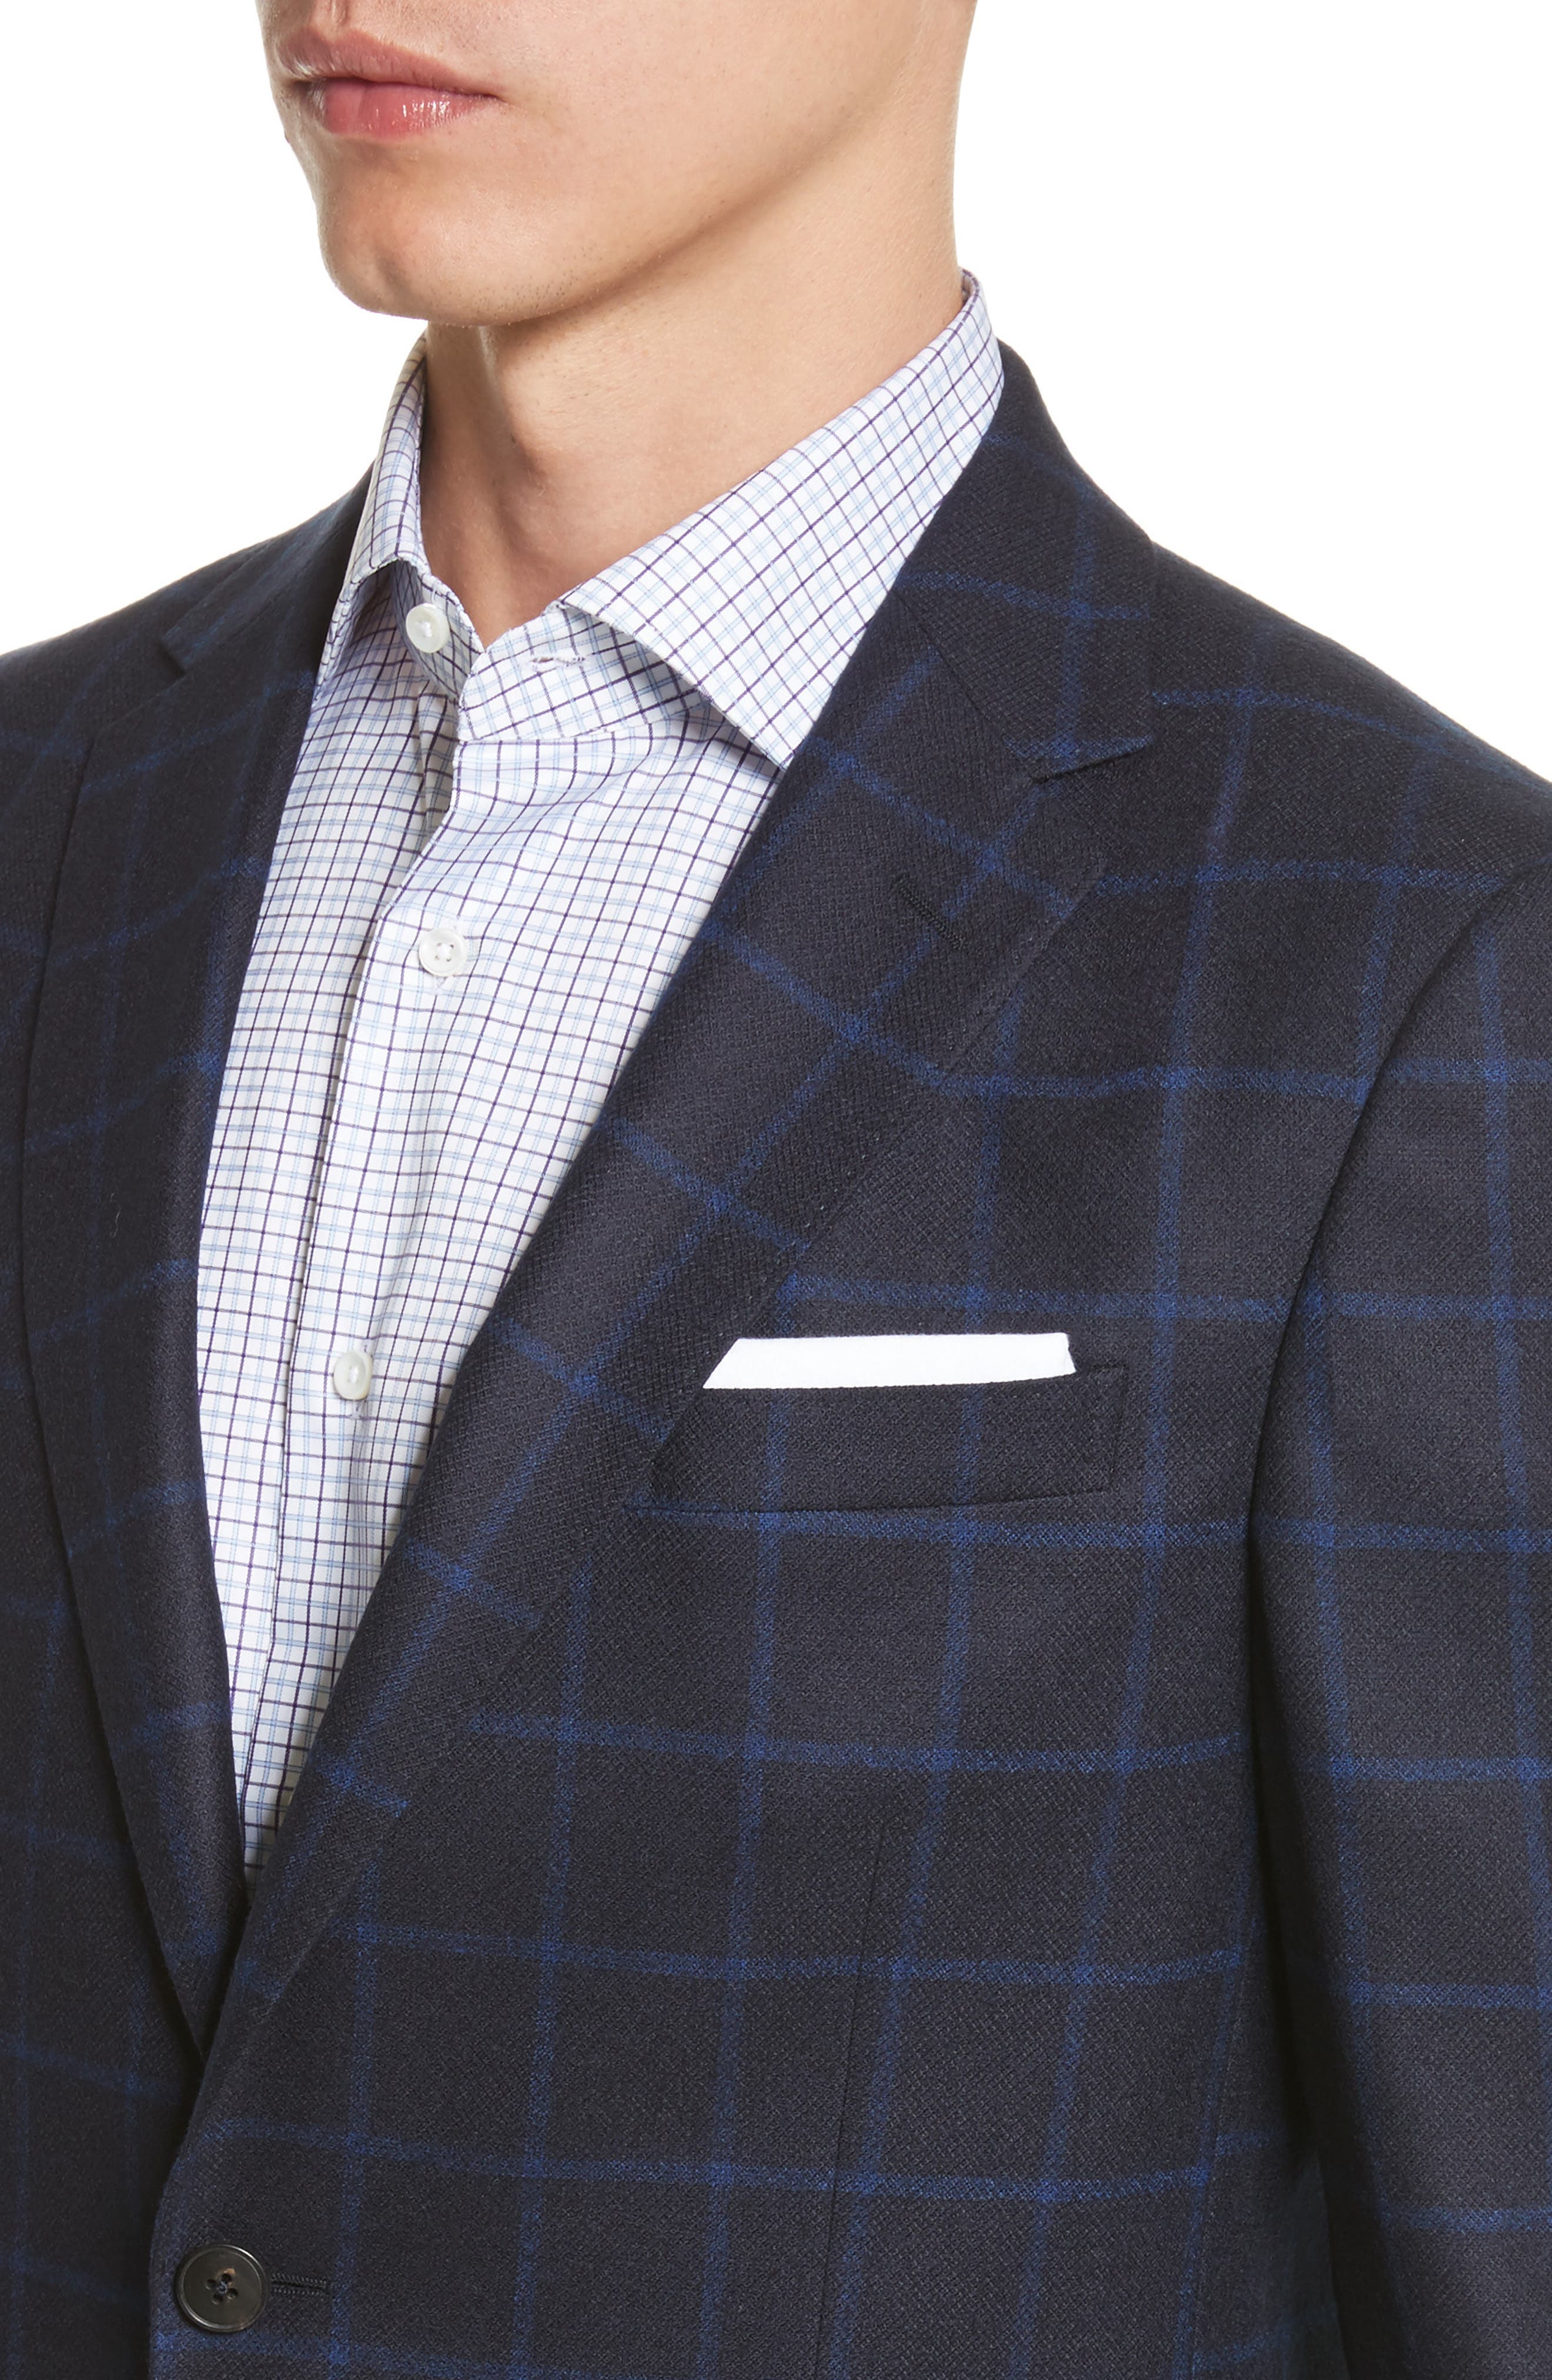 Classic Fit Check Wool Sport Coat,                             Alternate thumbnail 4, color,                             Navy Check